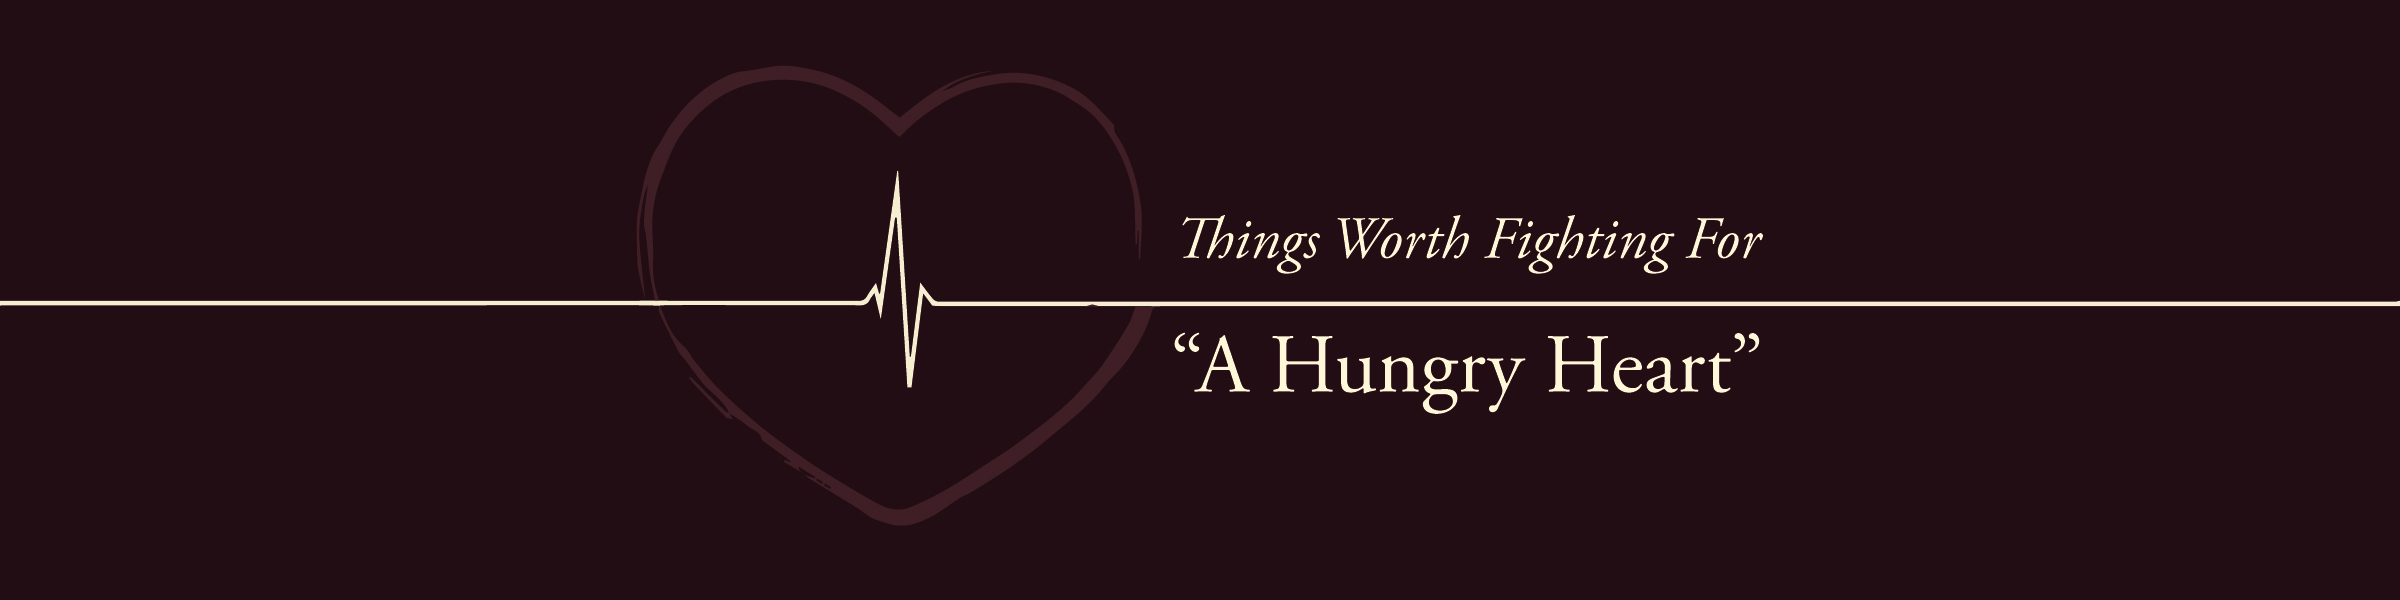 a hungry heart title.jpg